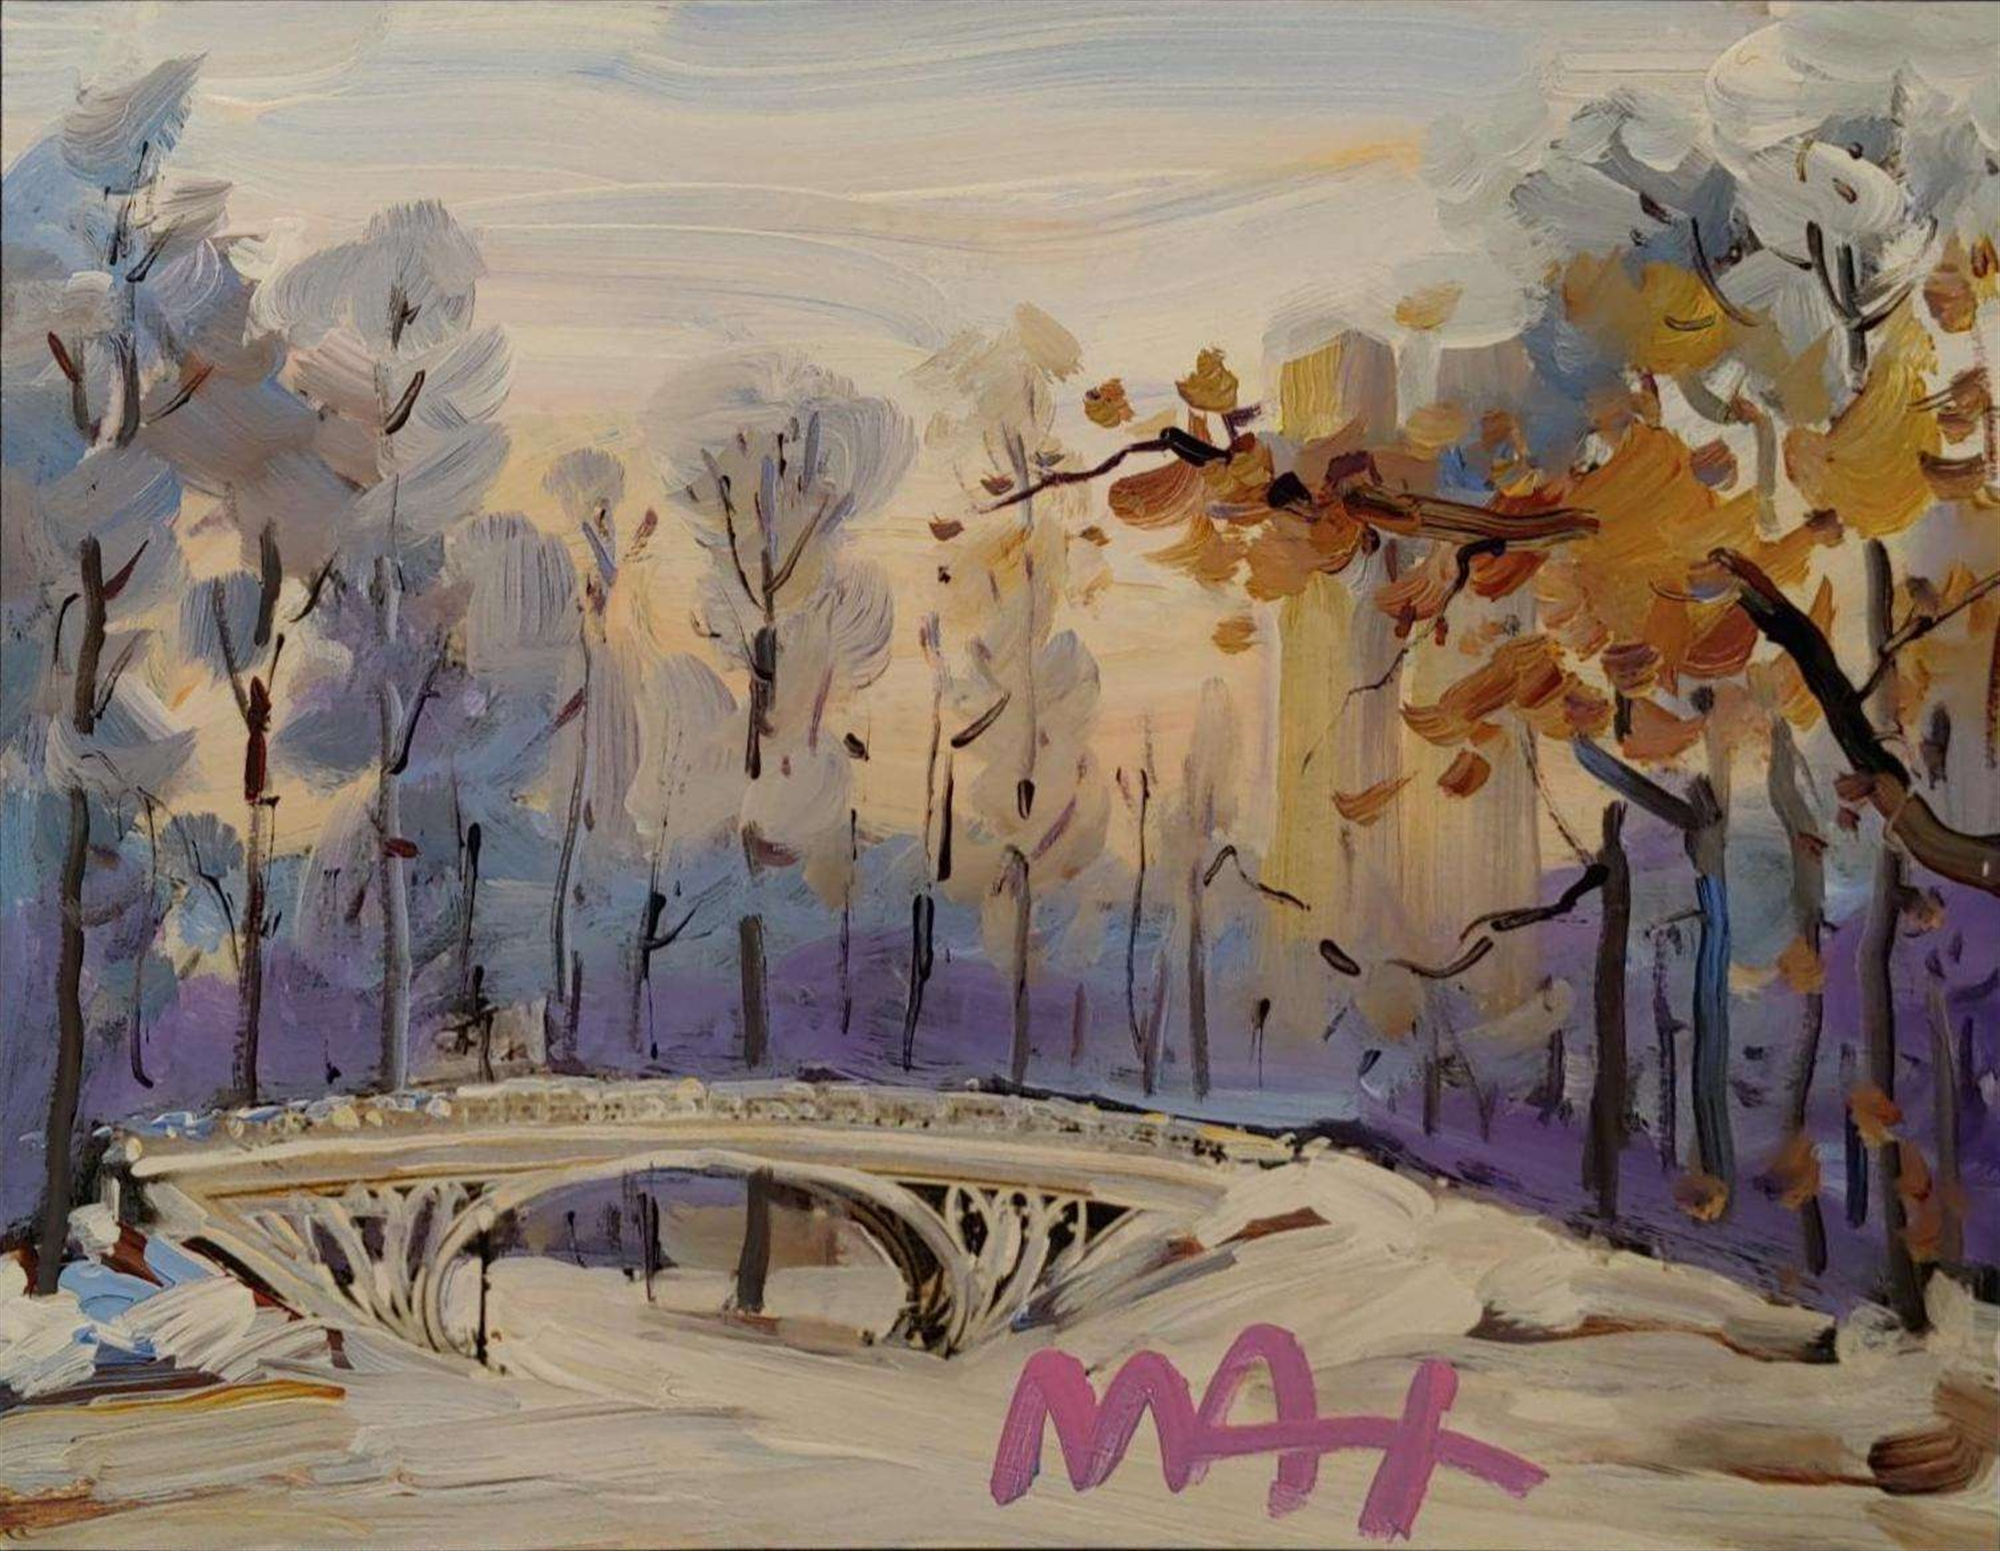 FOUR SEASONS II: WINTER (CENTRAL PARK) by Peter Max